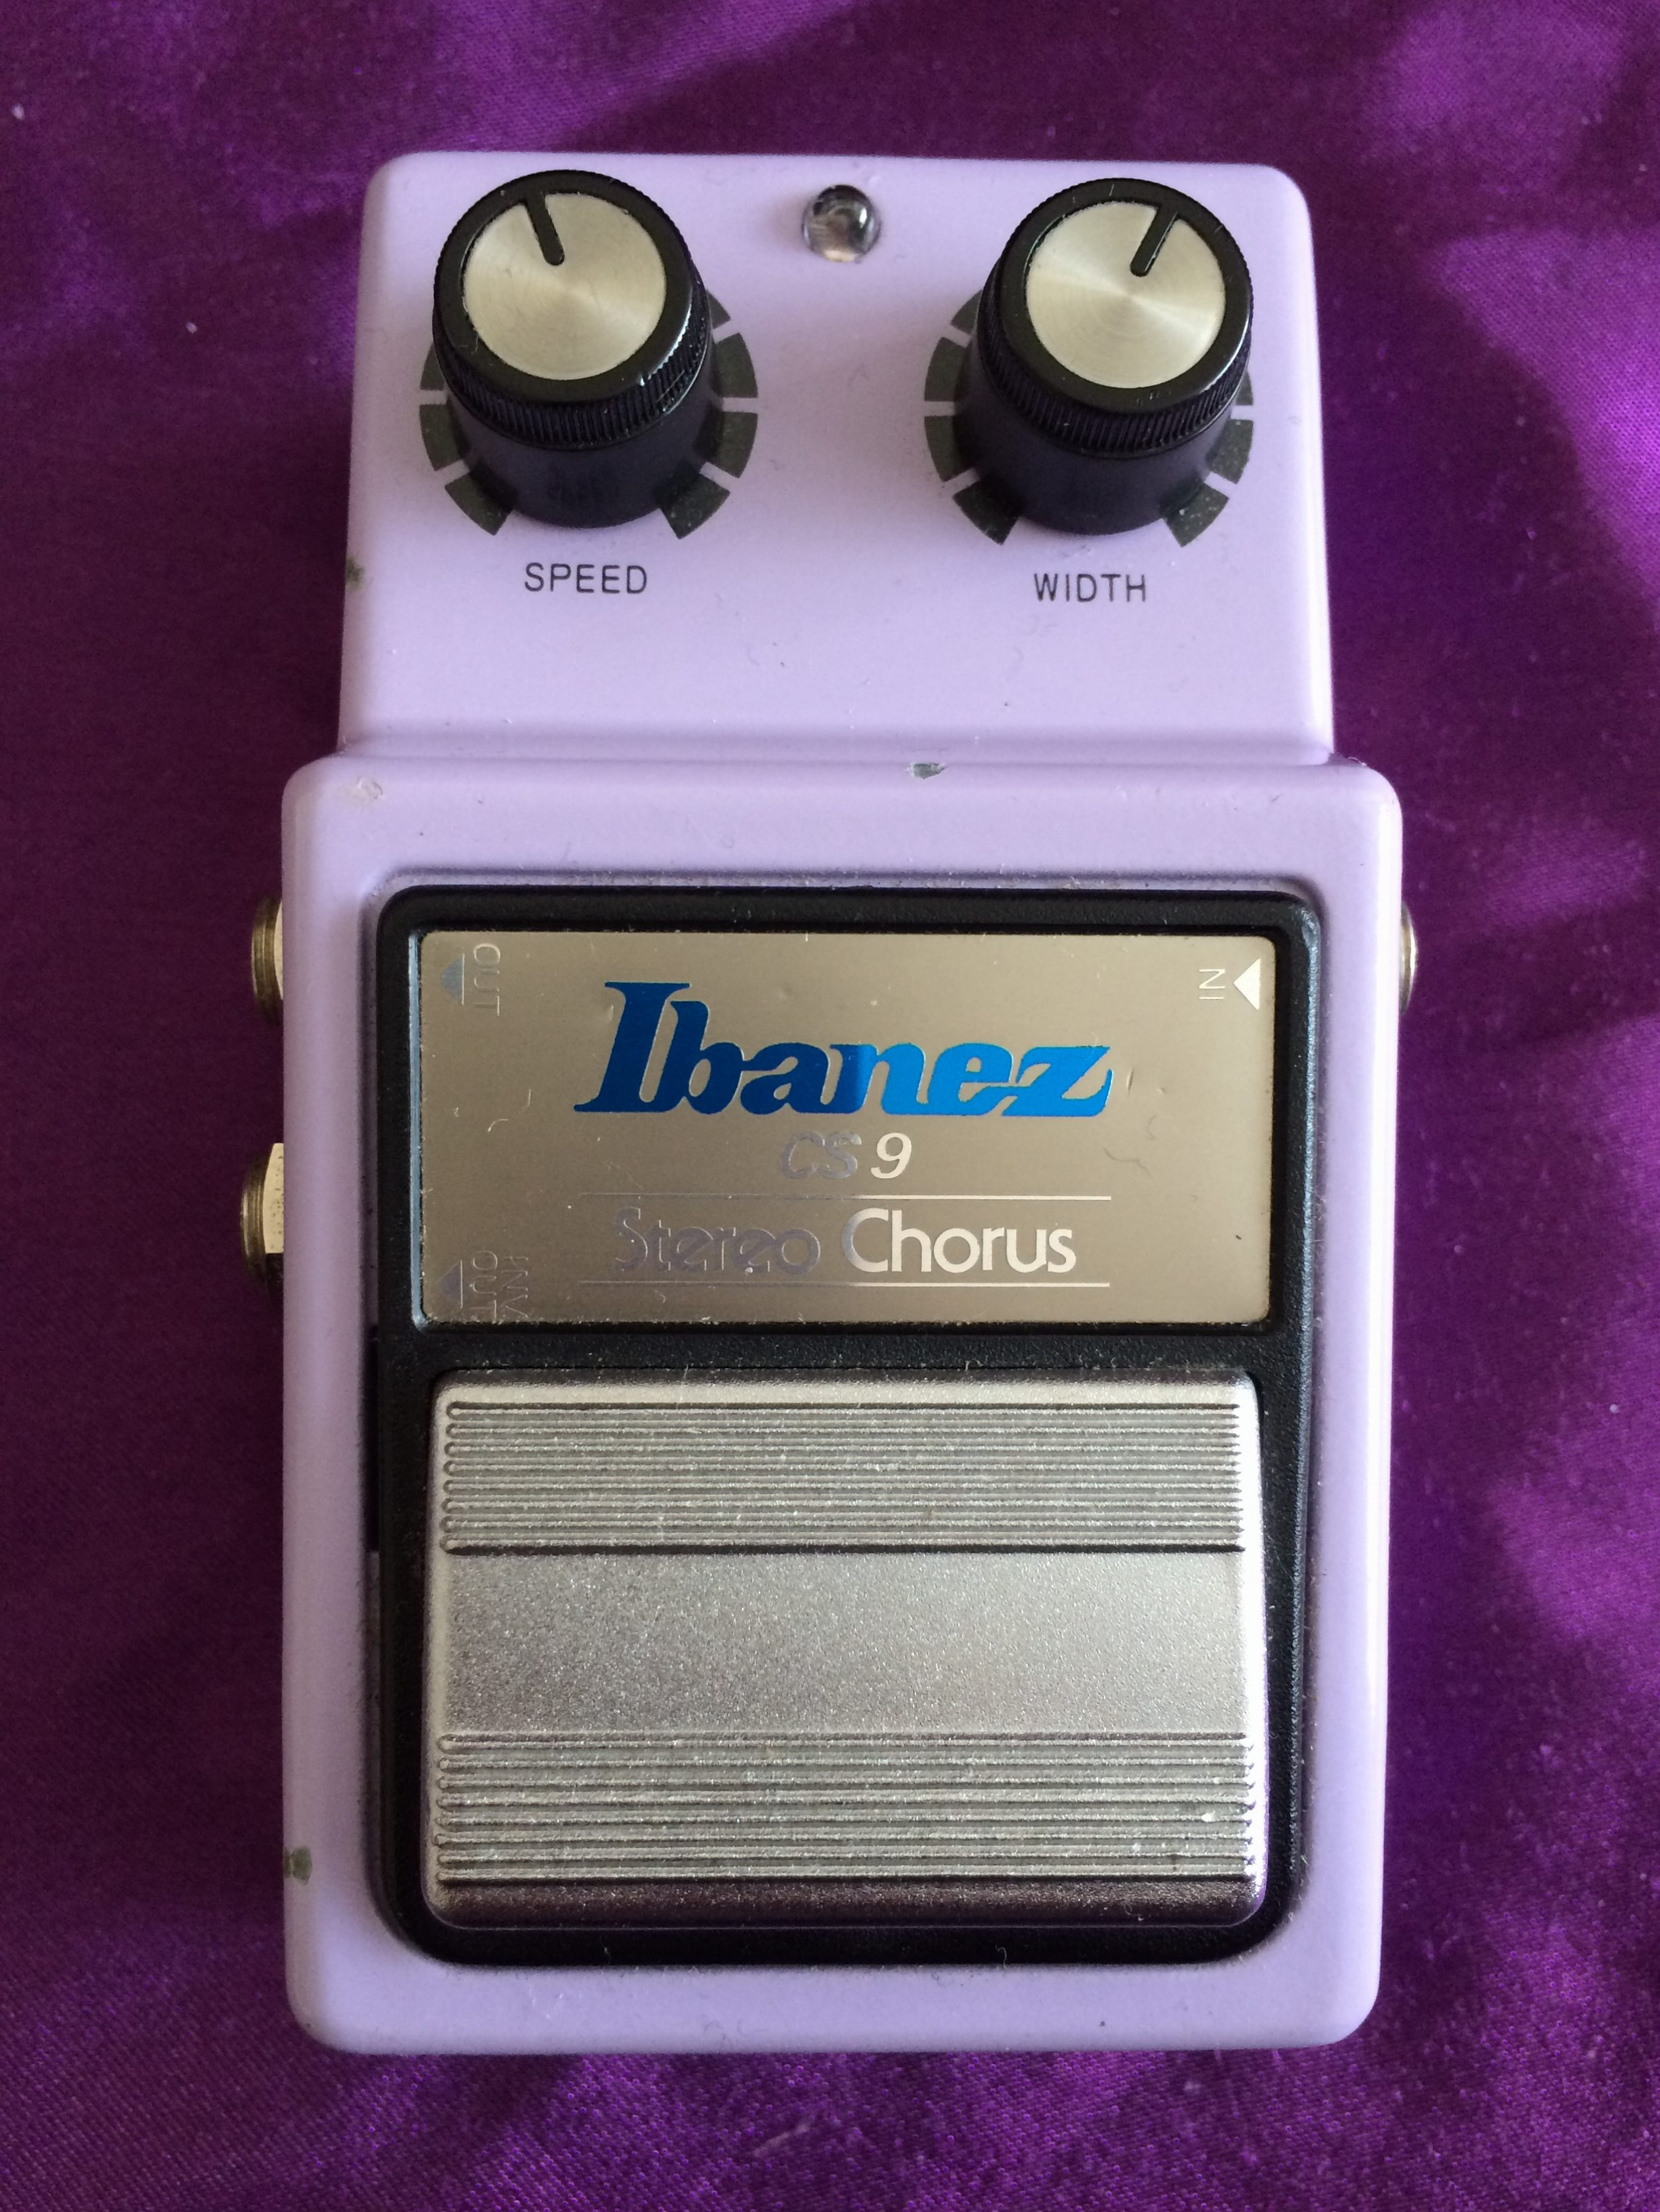 ibanez cs9 stereo chorus manual